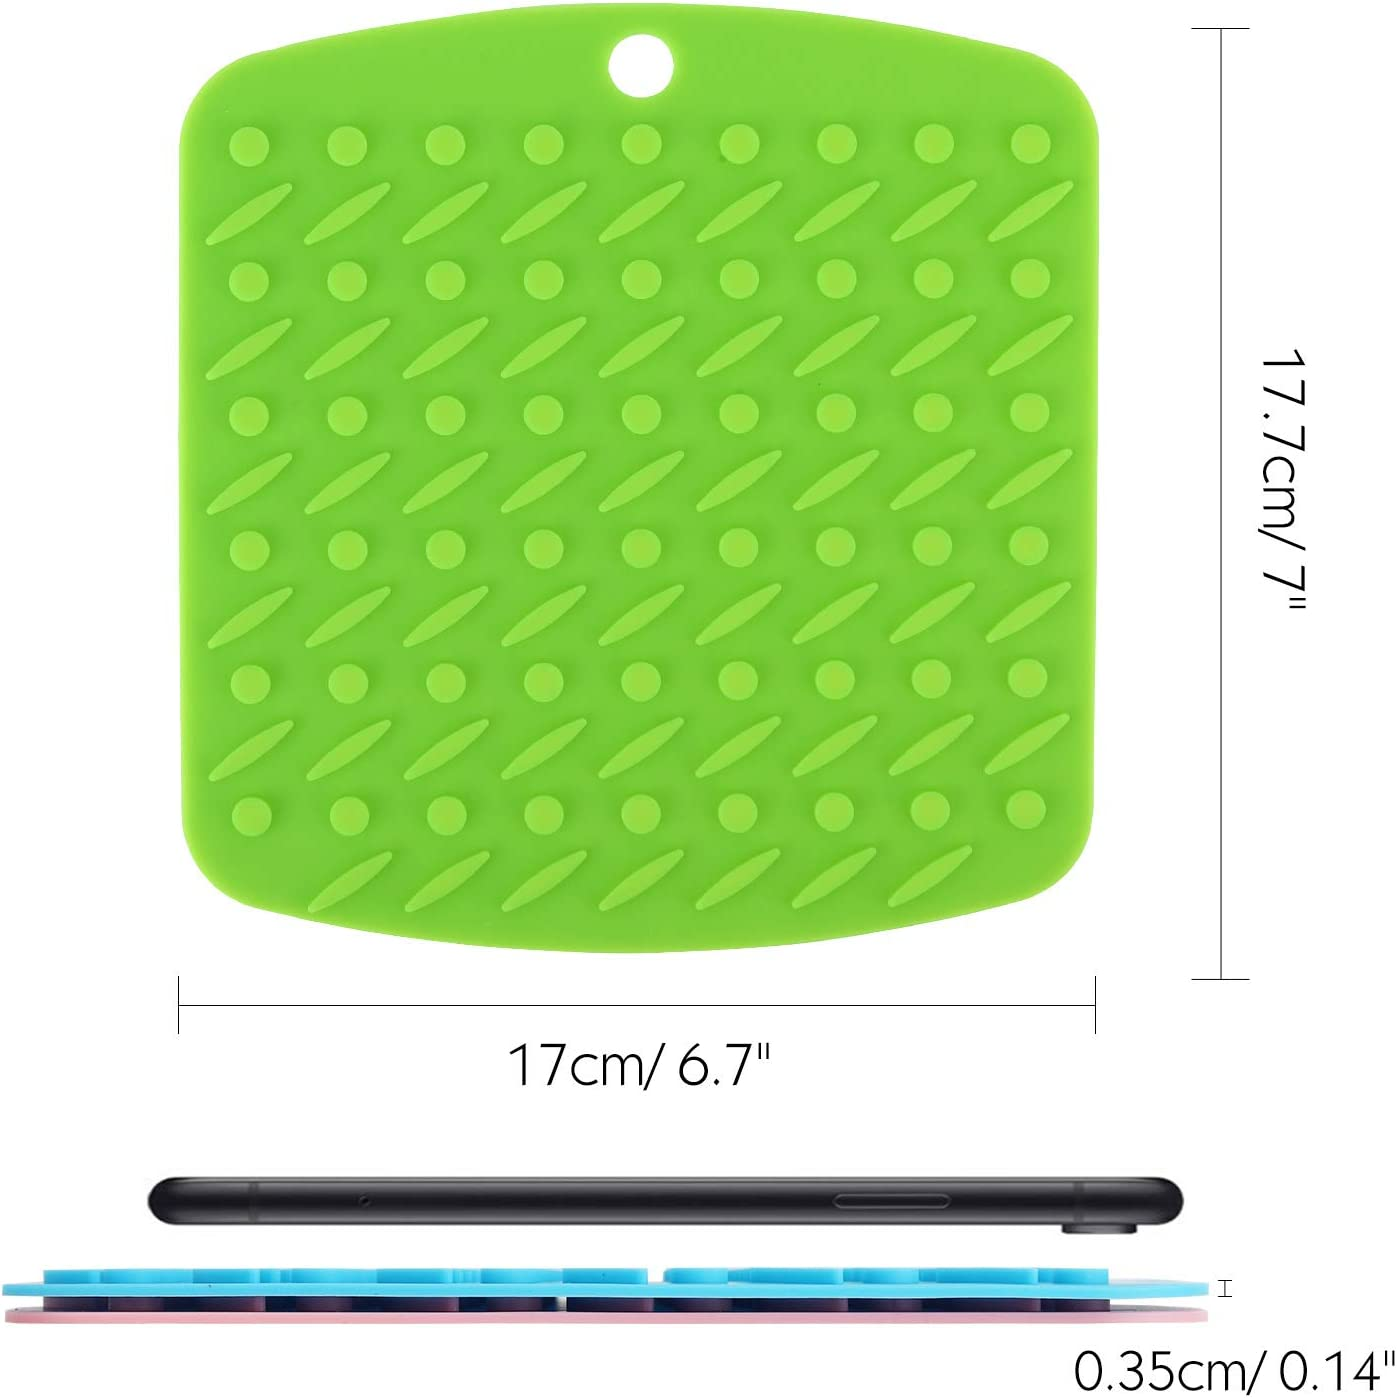 Colorful Oven Mitts and Coasters Nuovoware Silicone Trivet Mats,5 Pack Heat Insulated Hot Pan Pot Holders Squared Drying Mat Table Placemats for Non-Slip Jar Opener